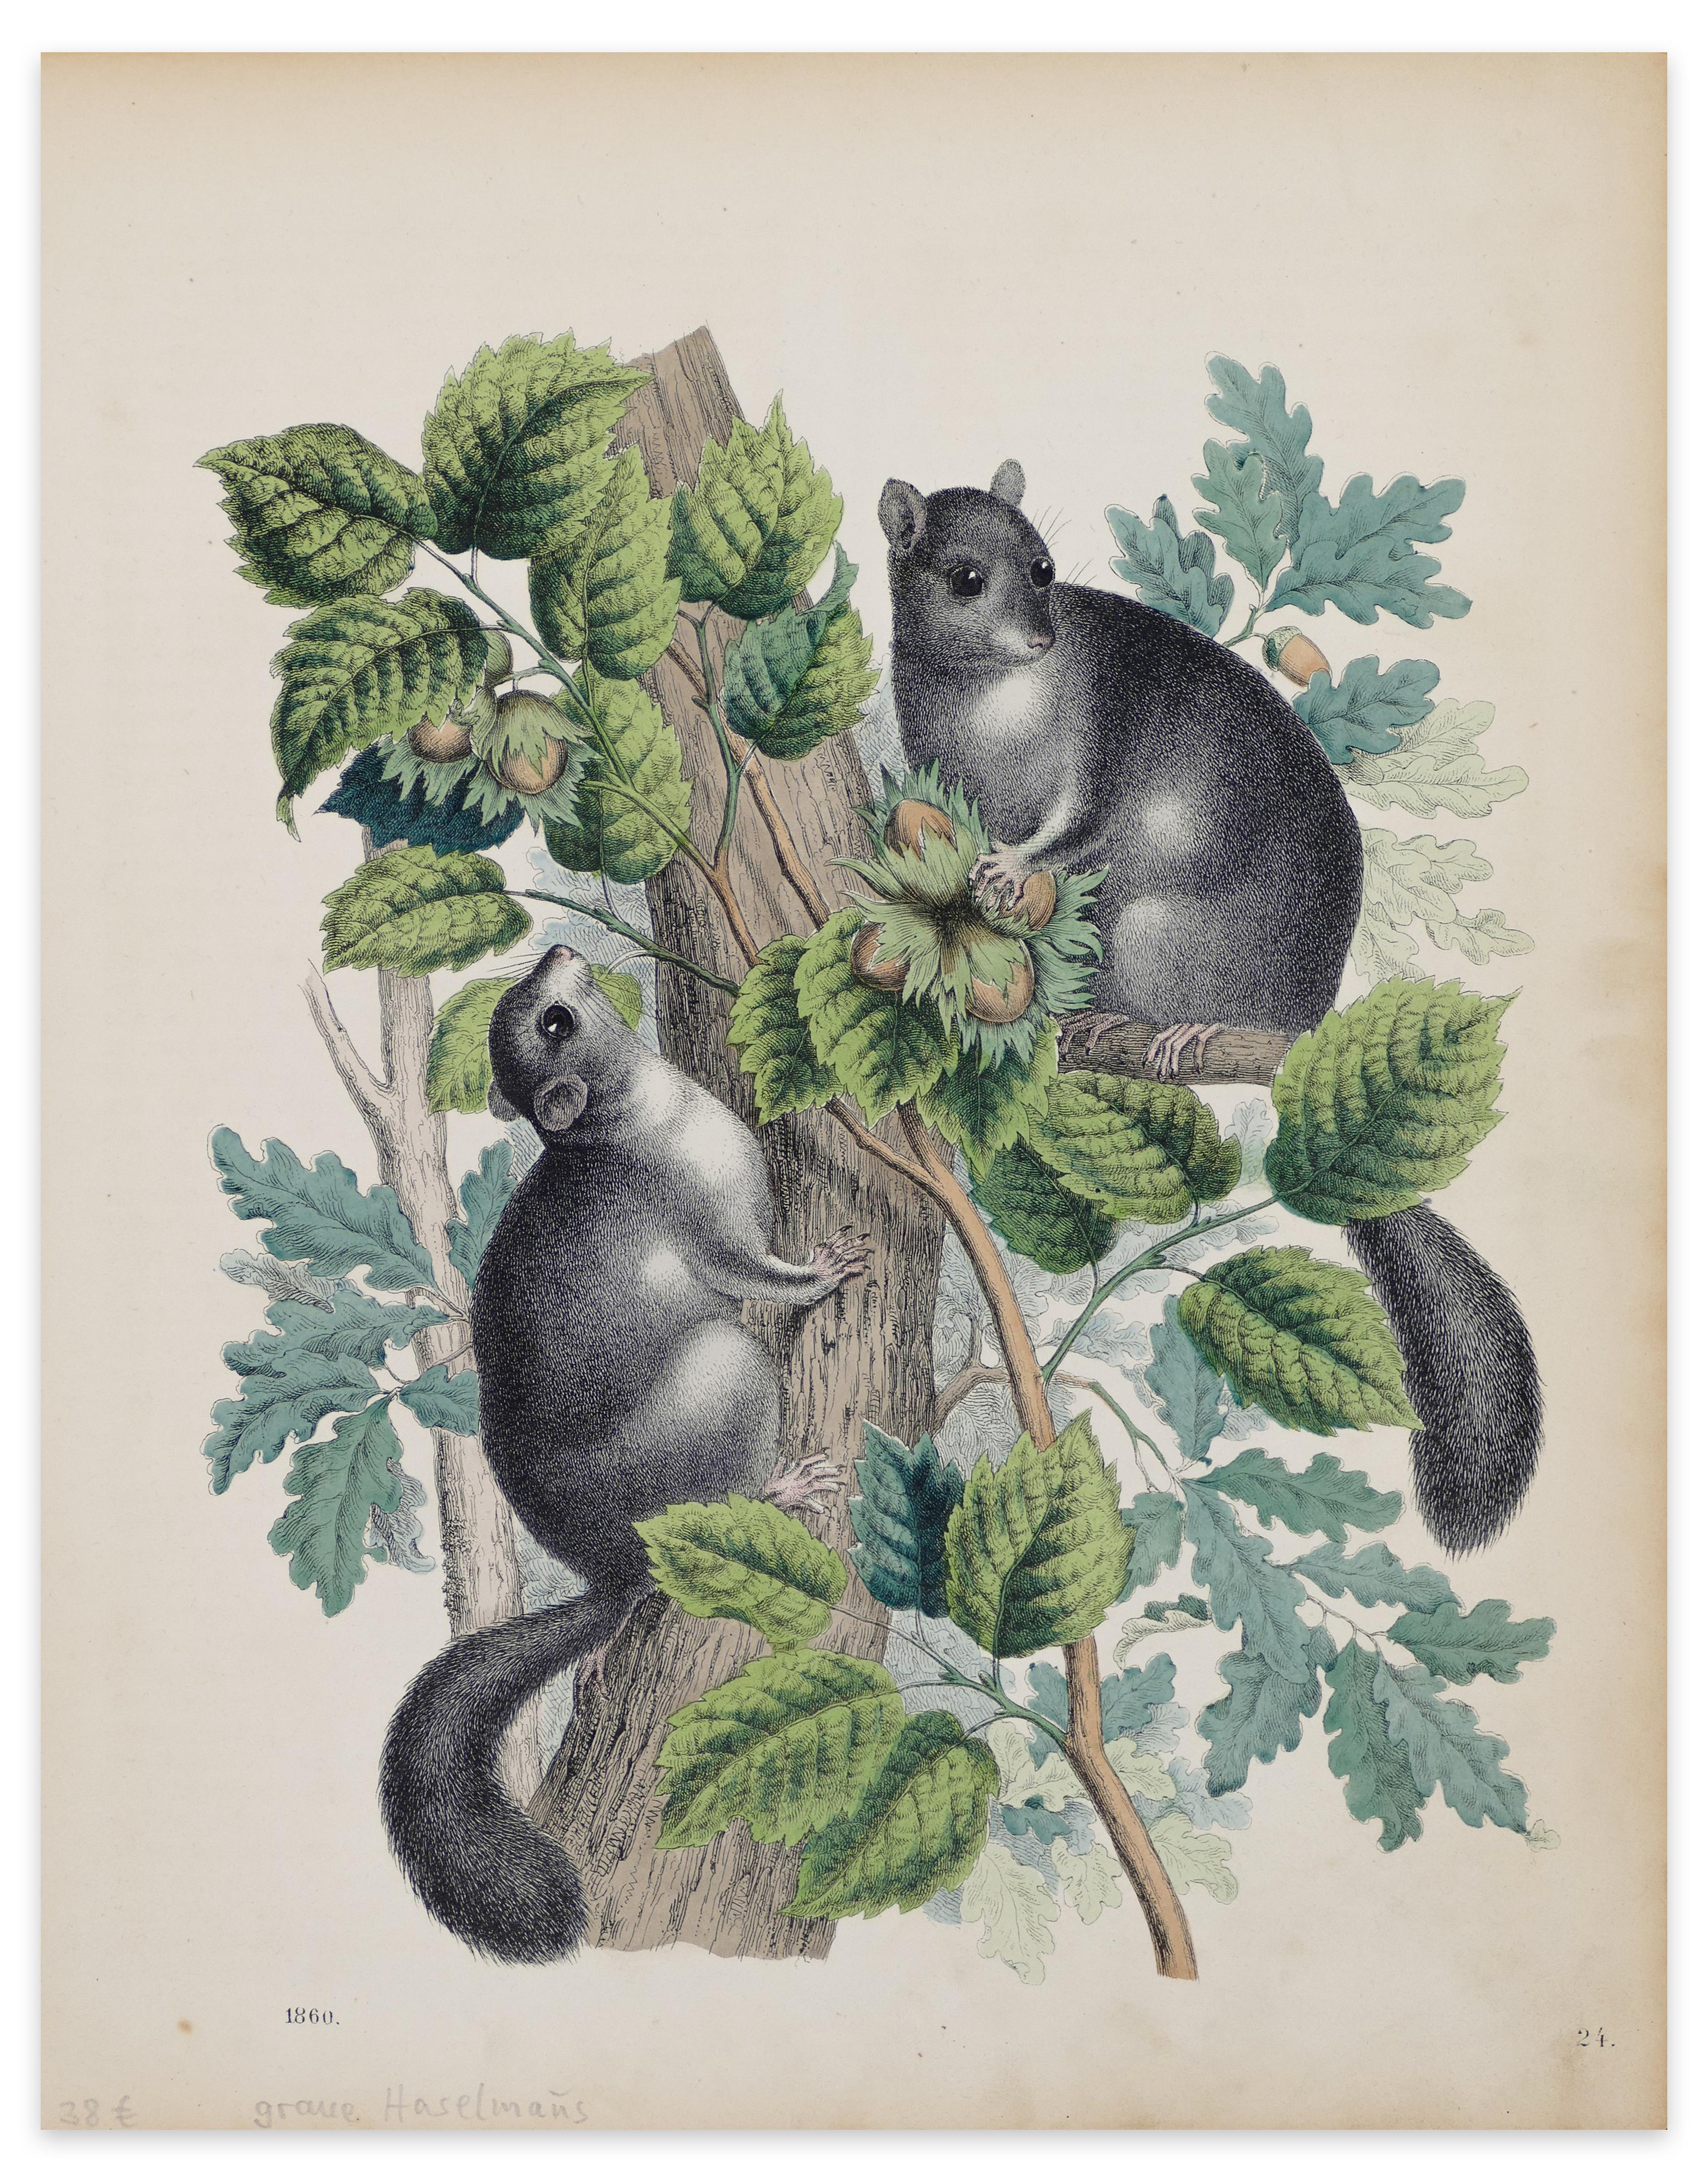 Squirrels with Hazelnuts  - Original Lithograph - 1860